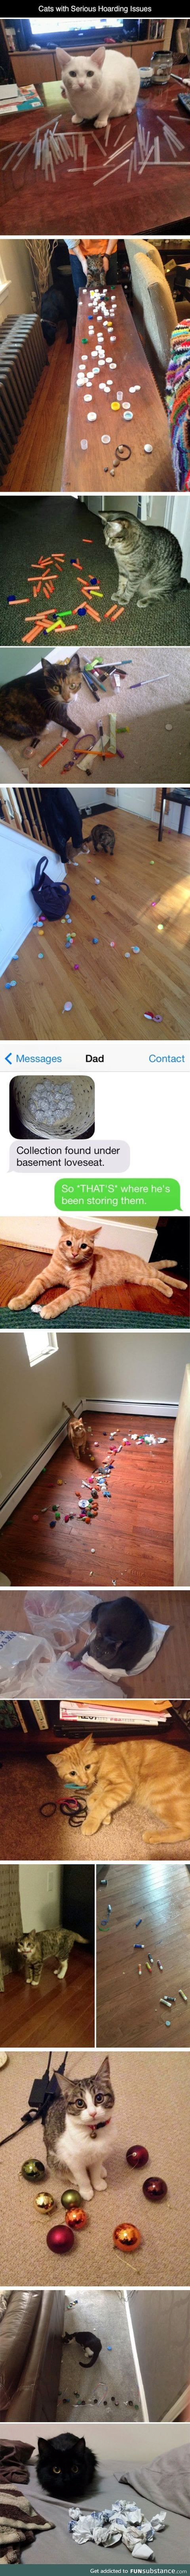 Cats with hoarding issues